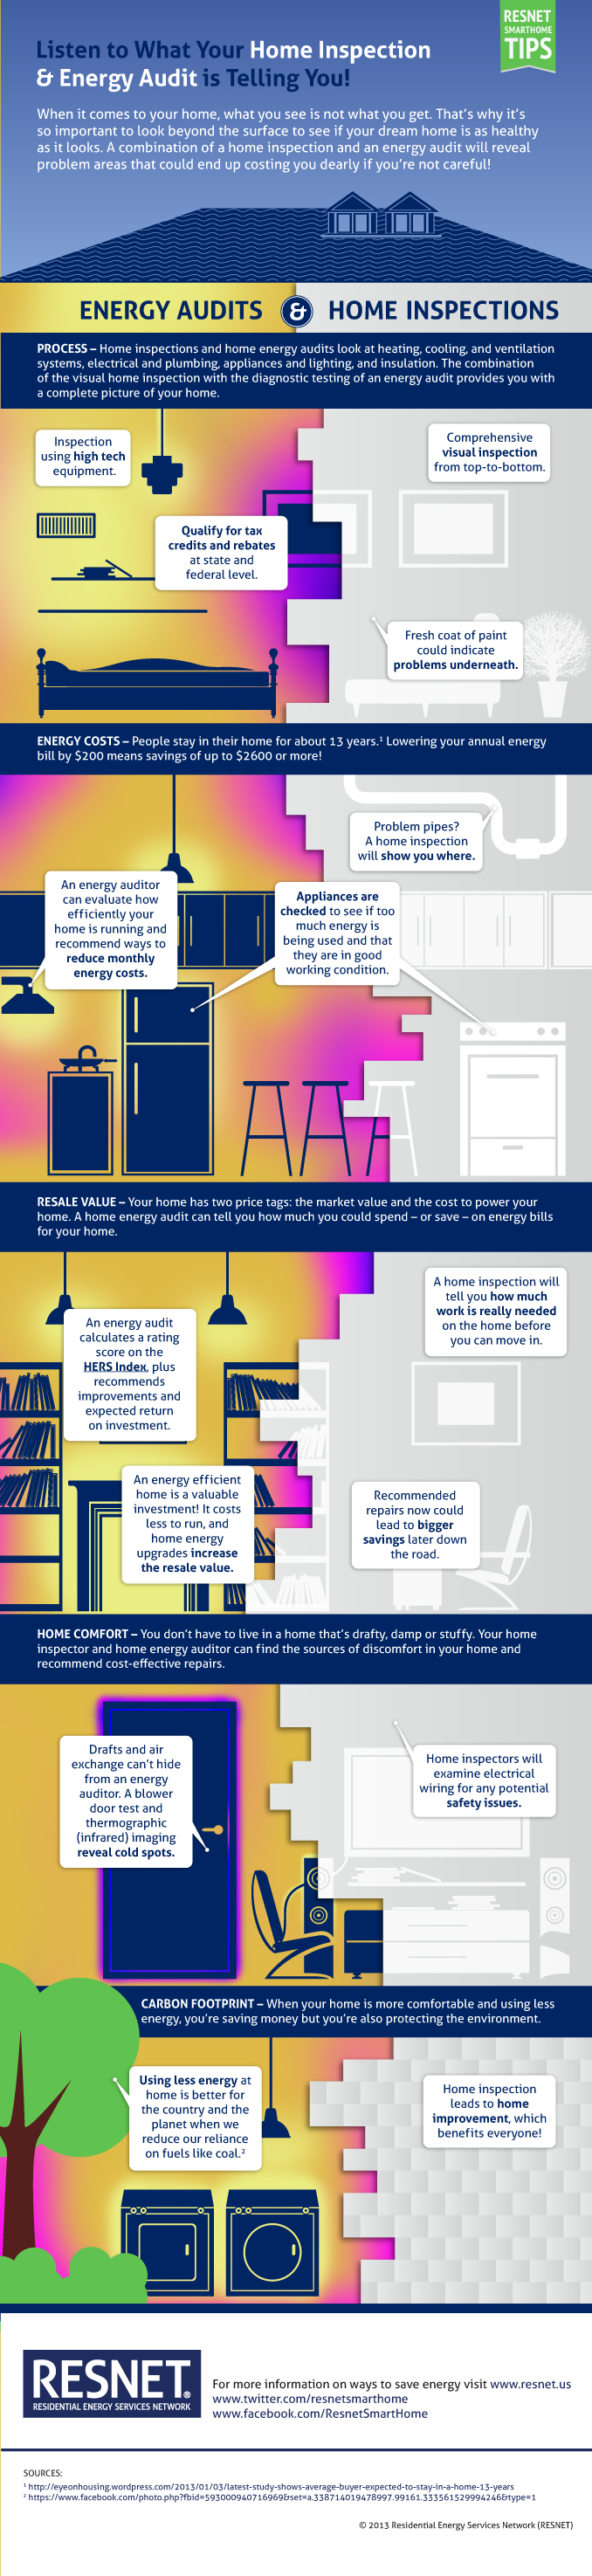 Listen To What Your Home Inspection Energy Audit Is Telling You Infographic Energy Audit Home Inspection Energy Saving Tips